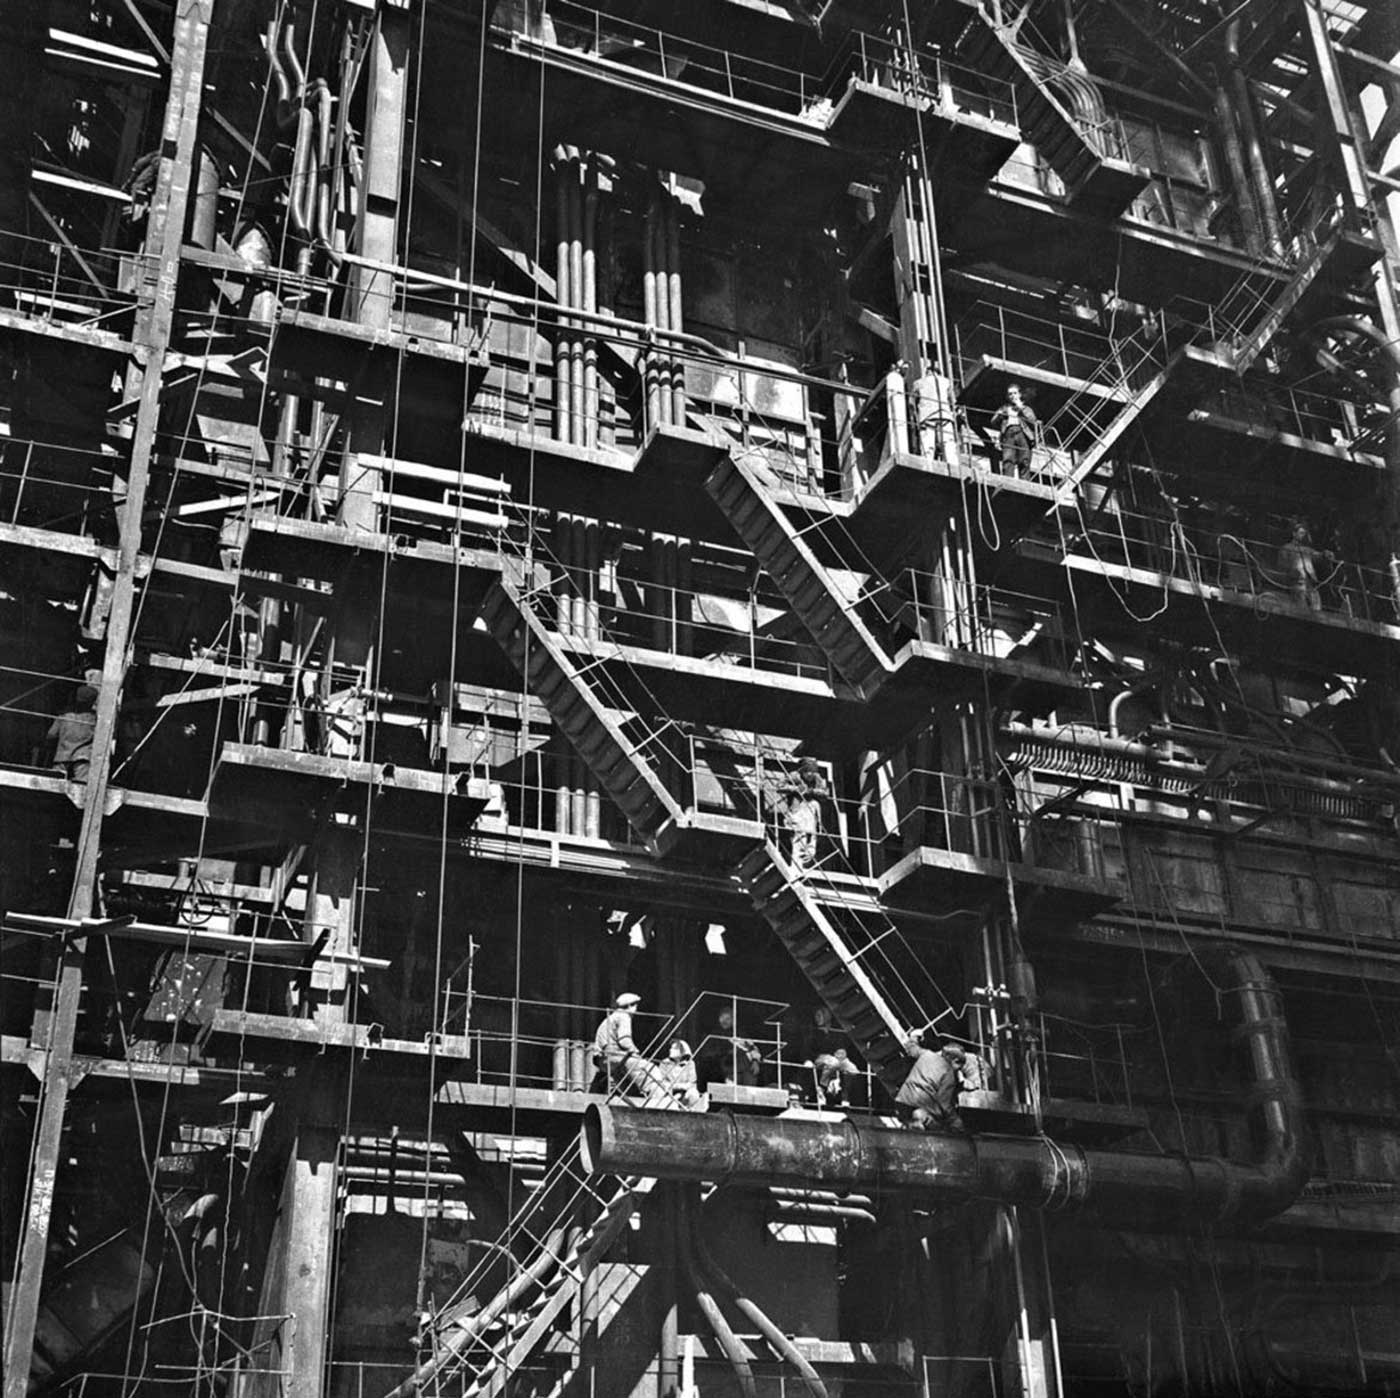 Archive photograph from the construction of Elektrėnai Power Plant.